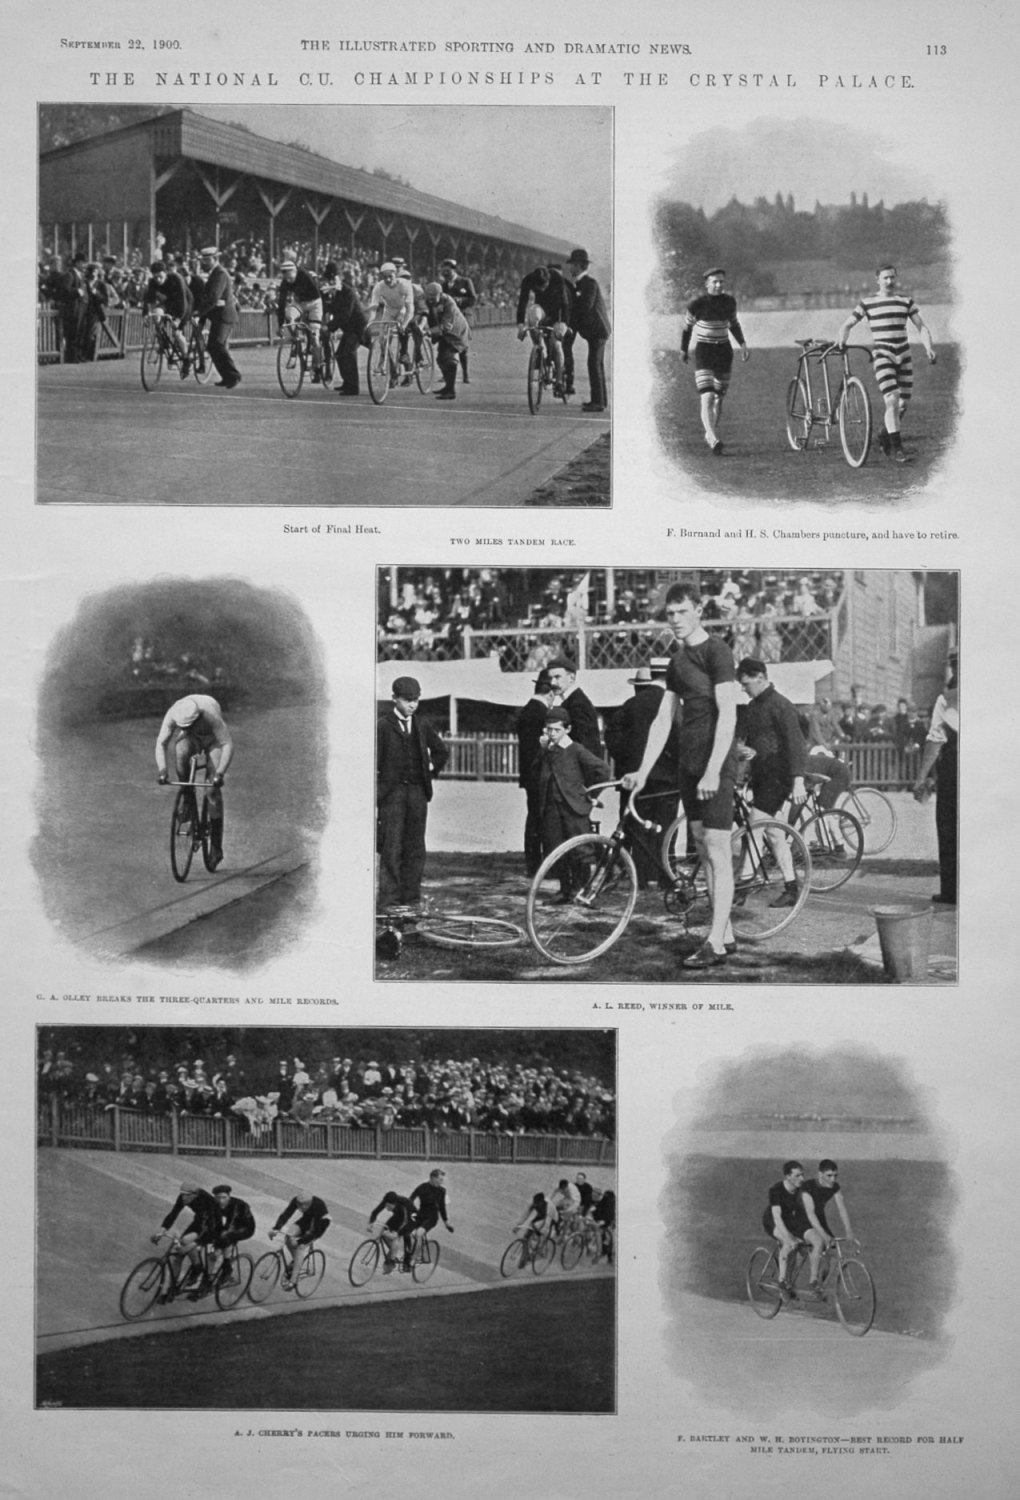 The National C.U. Championships at the Crystal Palace.